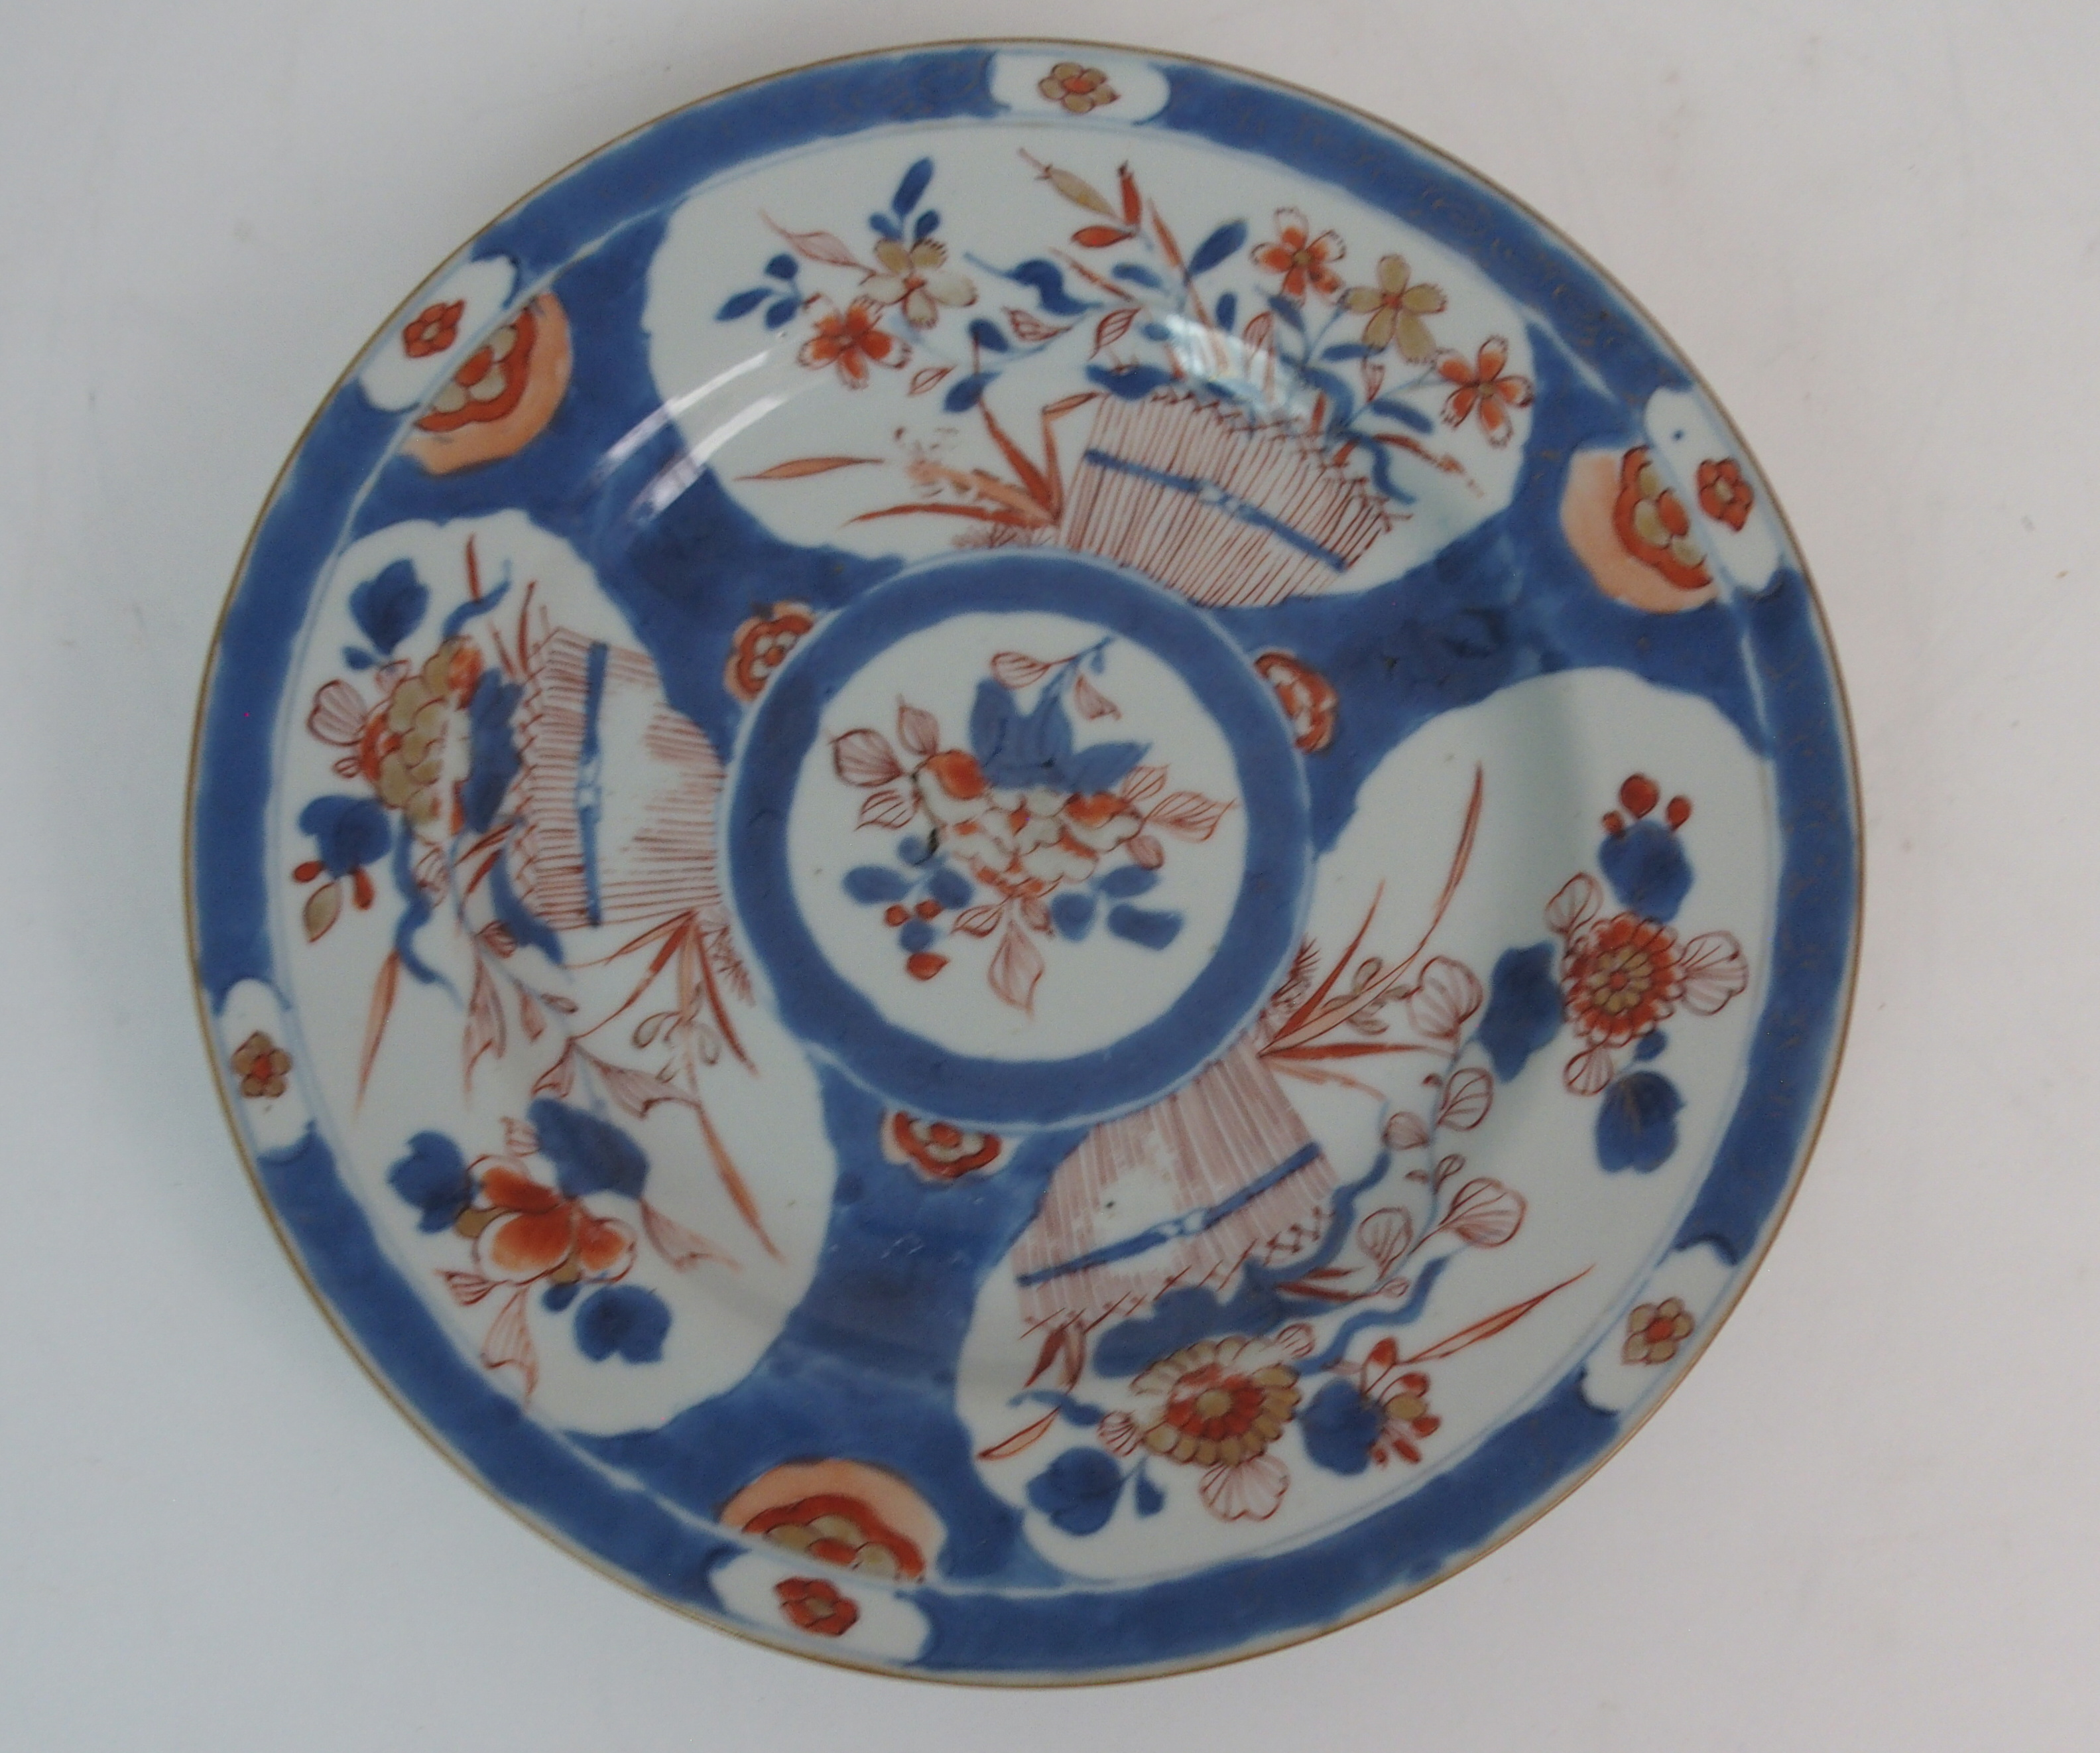 FIVE CHINESE EXPORT PLATES comprising; floral sprays, 22.5cm, Canton figures and precious objects, - Image 6 of 11